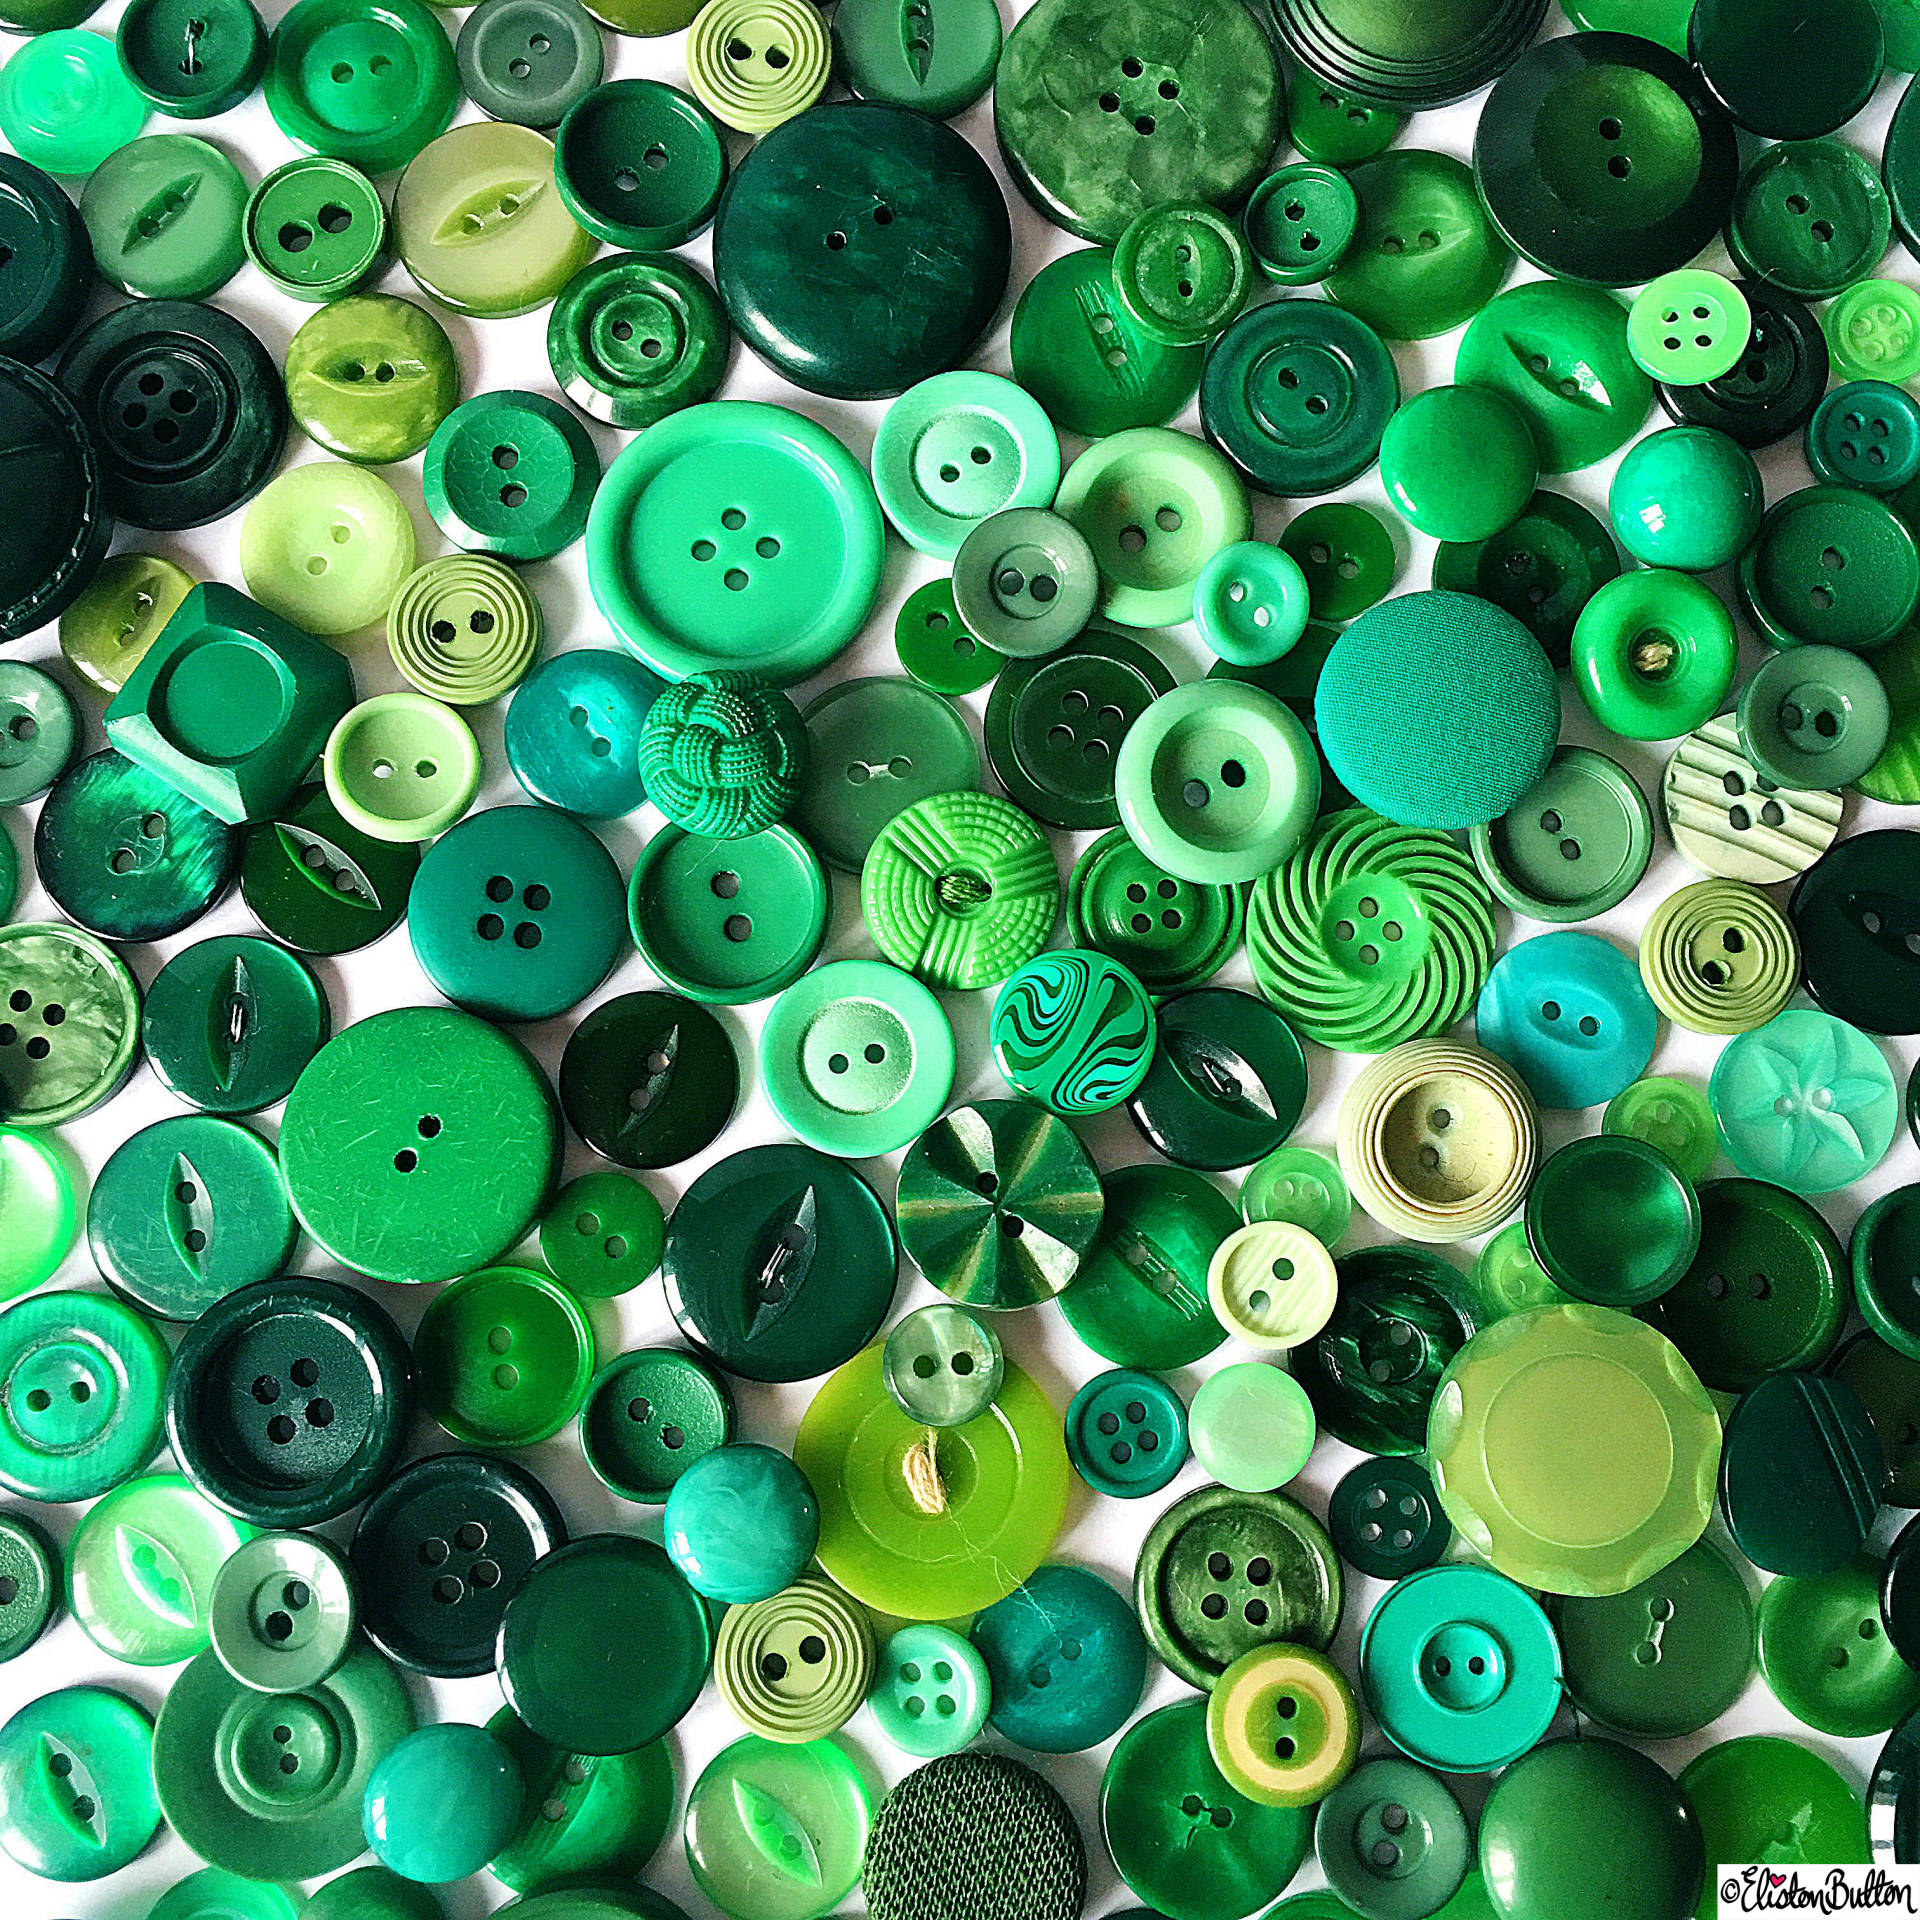 Day 01 - Green - Green Vintage Buttons - Photo-a-Day – March 2016 at www.elistonbutton.com - Eliston Button - That Crafty Kid – Art, Design, Craft & Adventure.